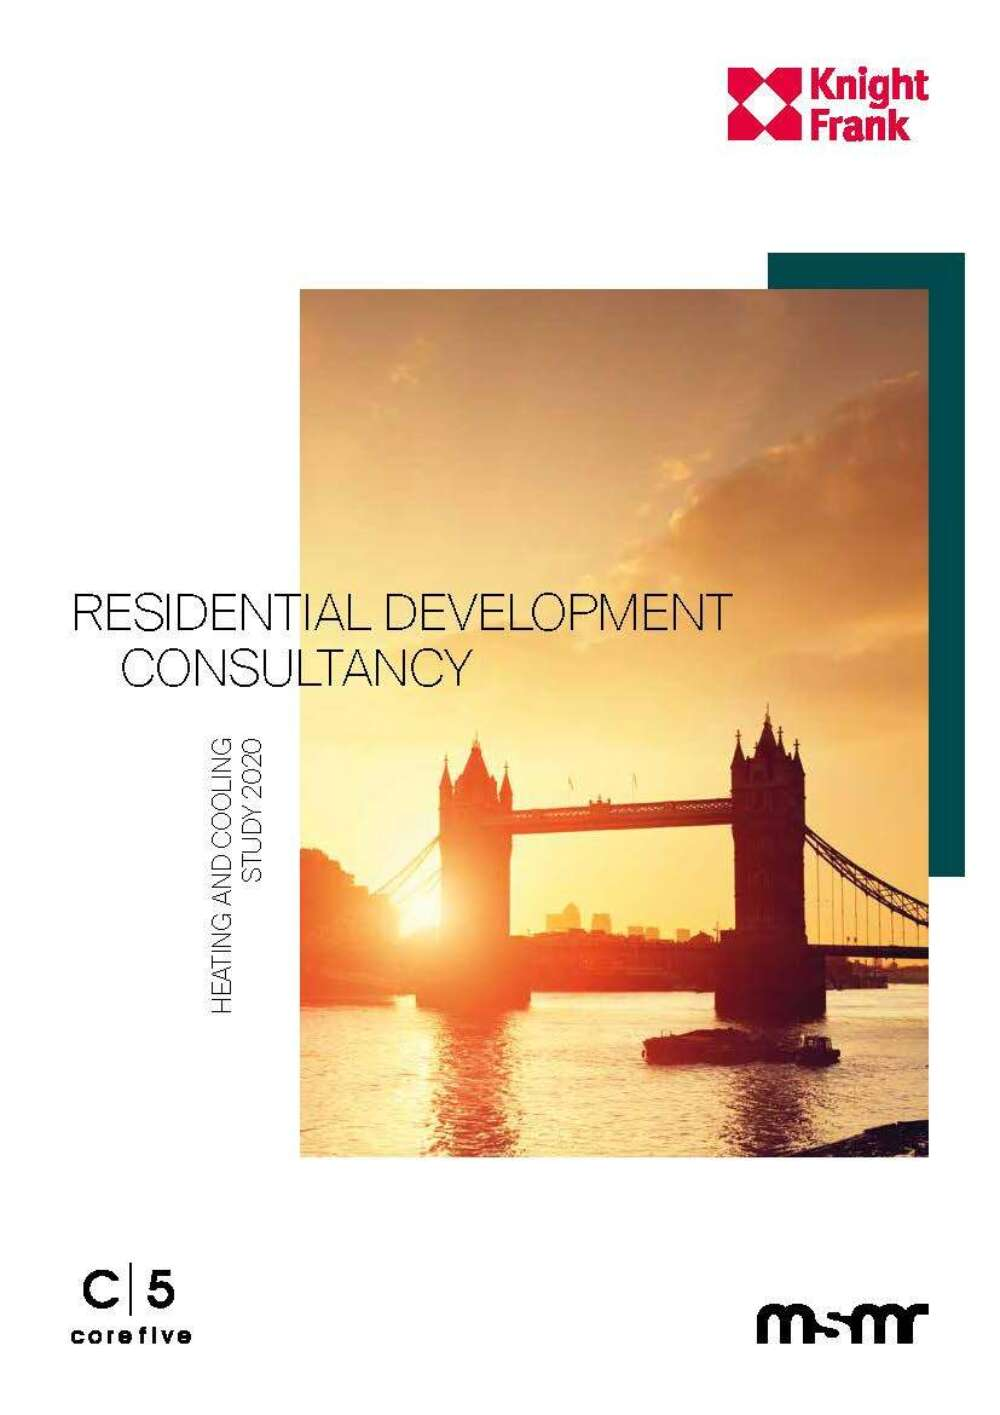 A Hot Topic for Residential Developers